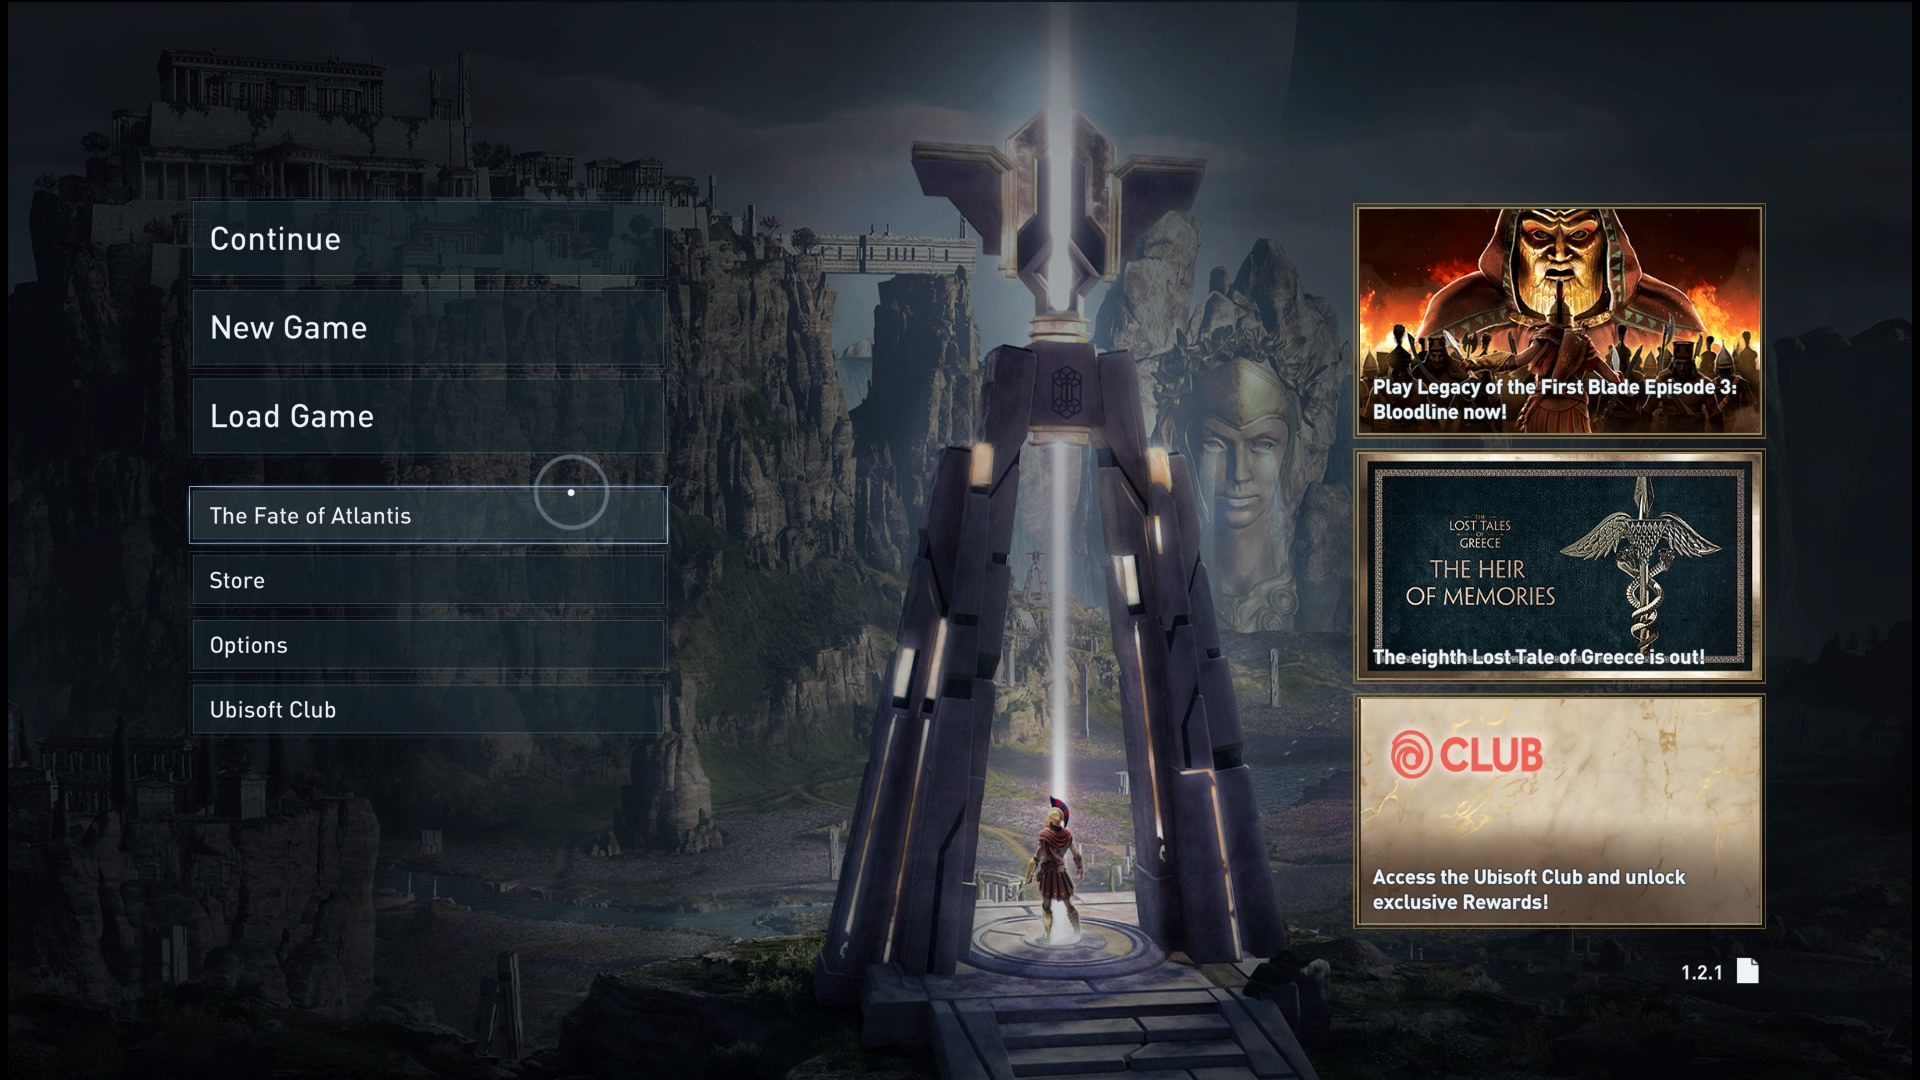 How to start The Fate of Atlantis Assassin's Creed Odyssey